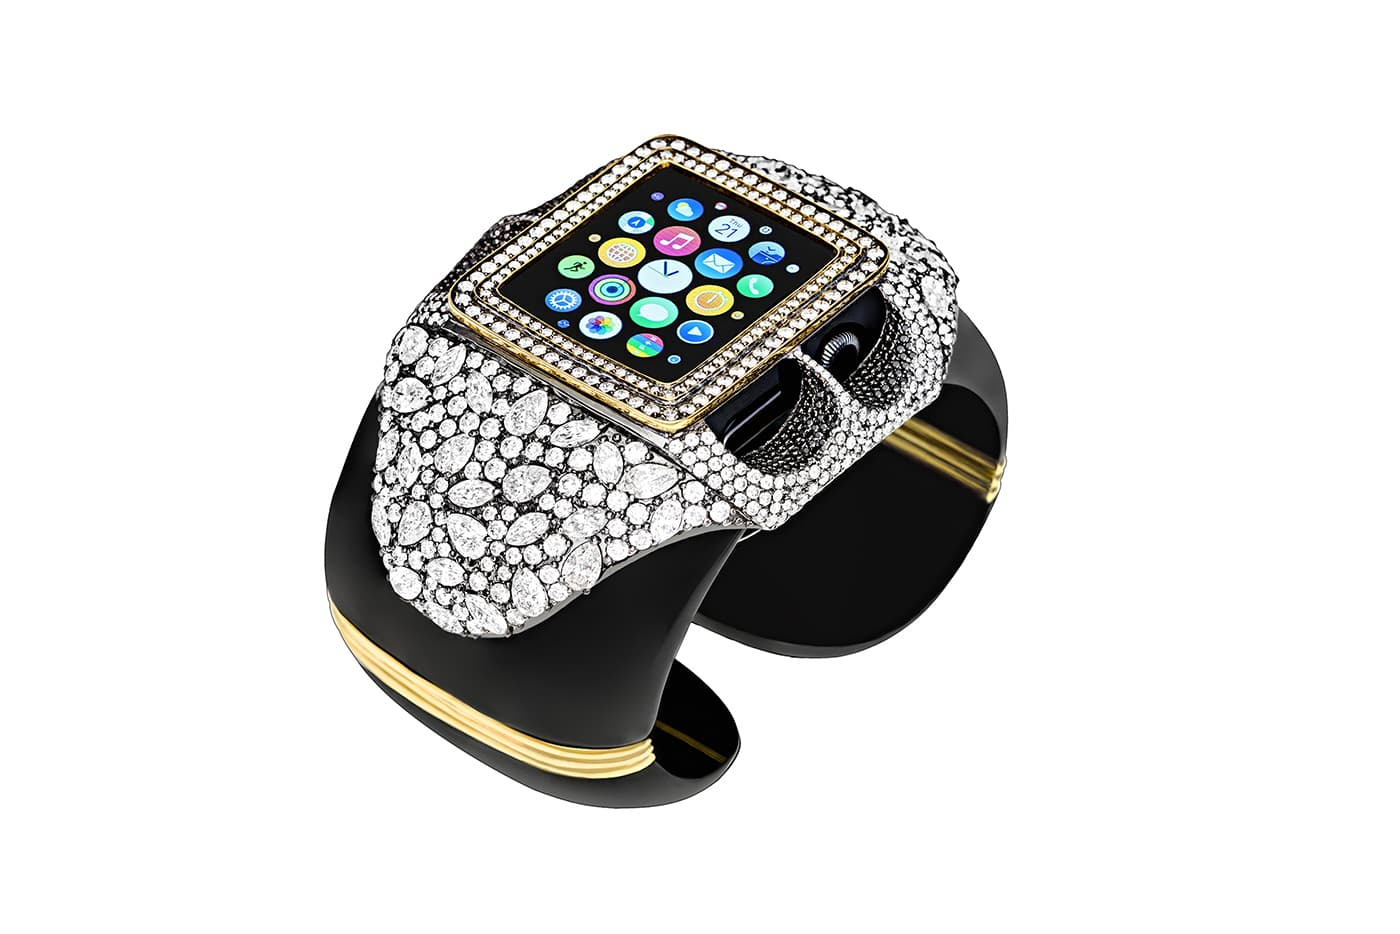 Margot McKinney Apple Watch cuff bracelet with over 25 cts of diamonds